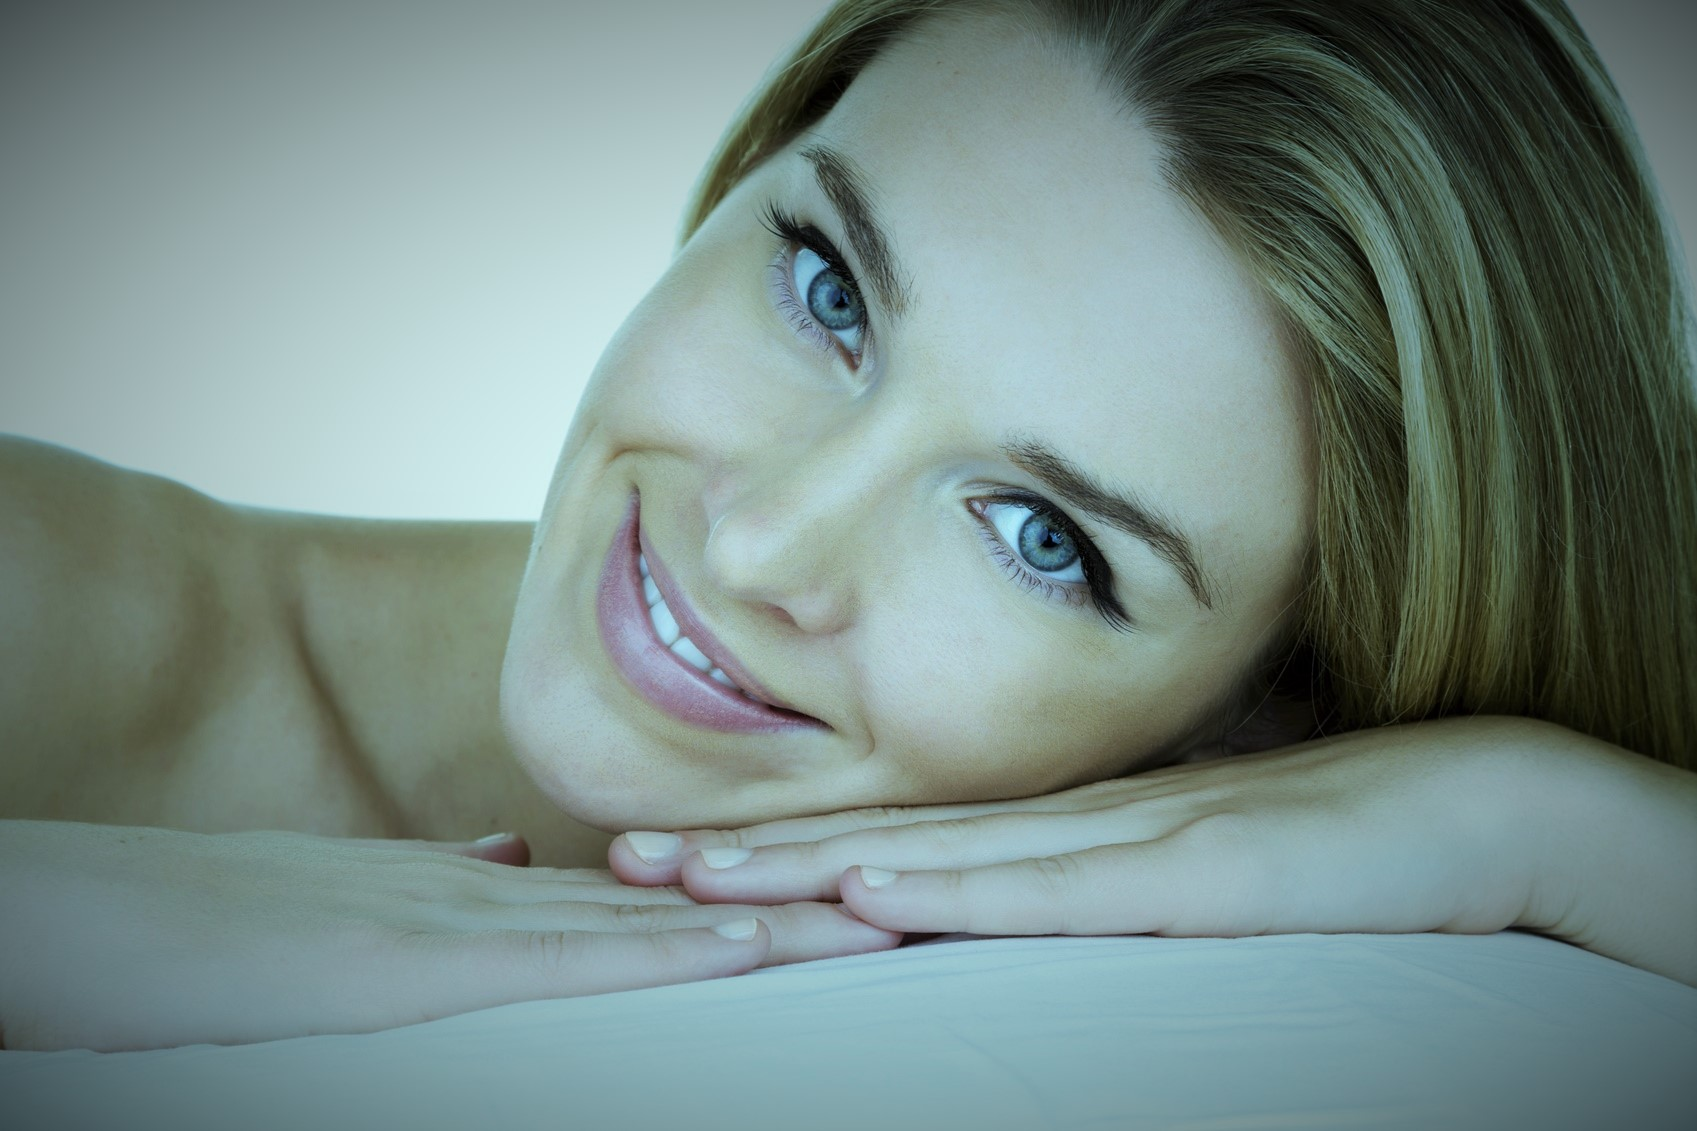 Hydrafacial, dermal filler and juvederm in Whitefish Montana